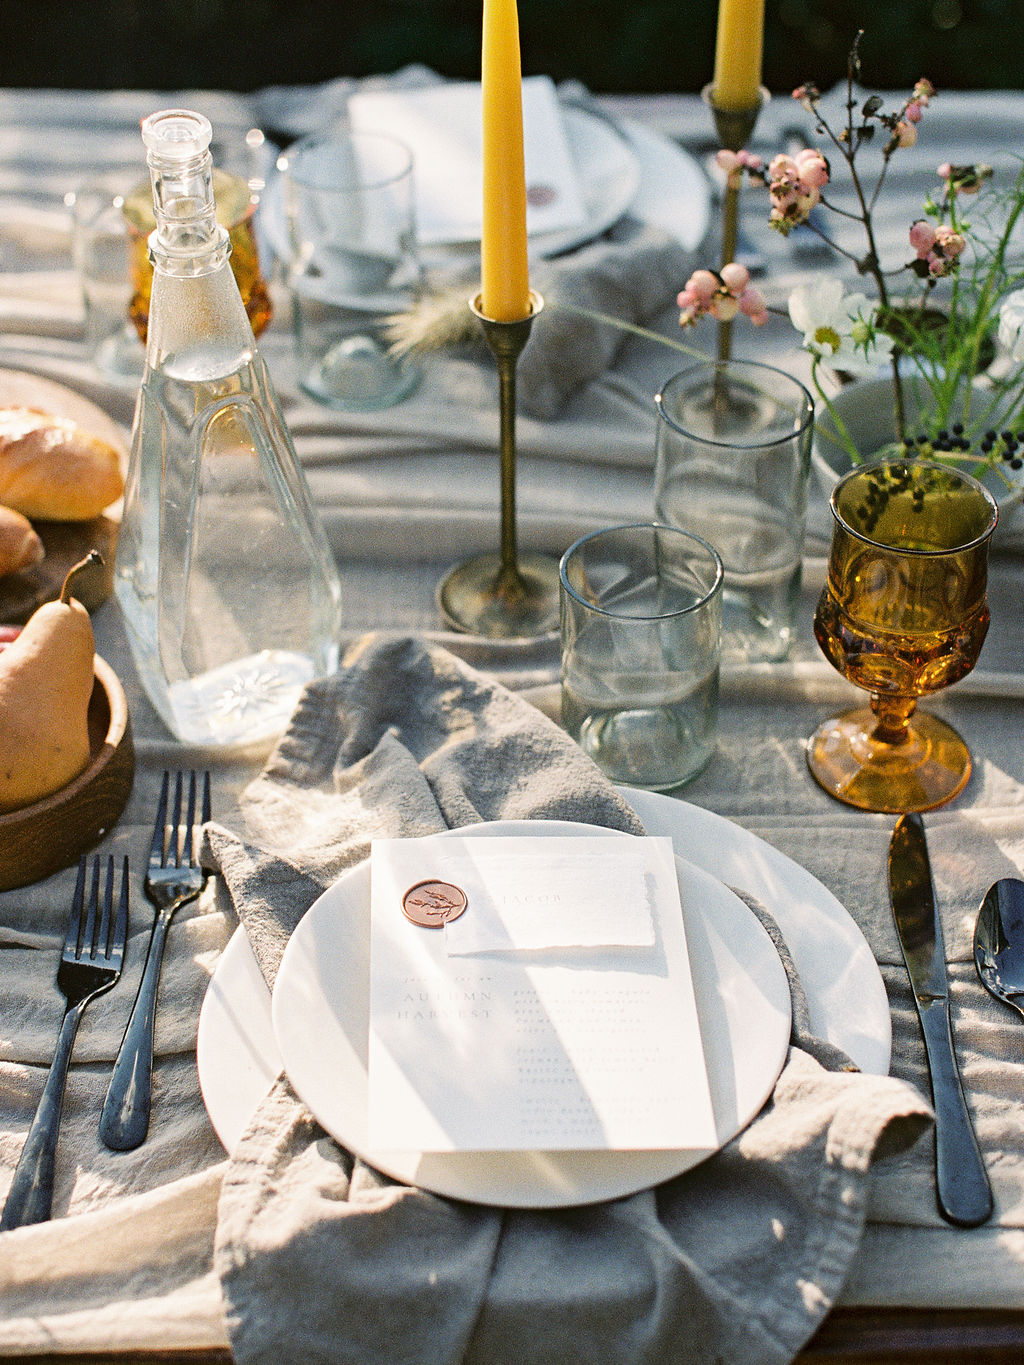 Wedding stationery for couples who are wildly in love.